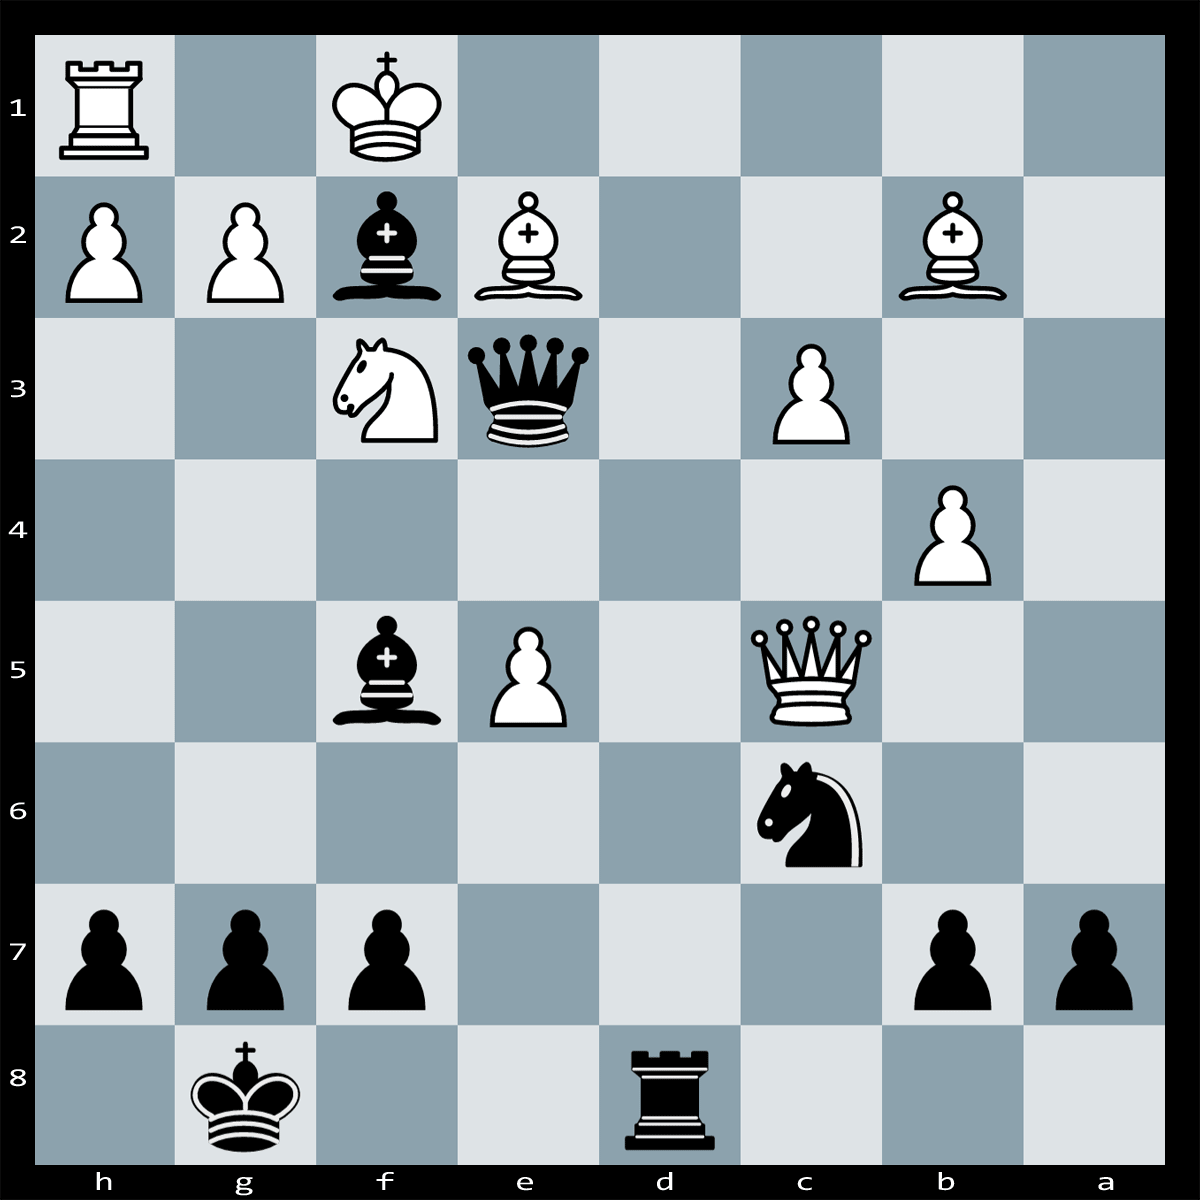 Mate in Three moves, Black to play | Chess Puzzle #130